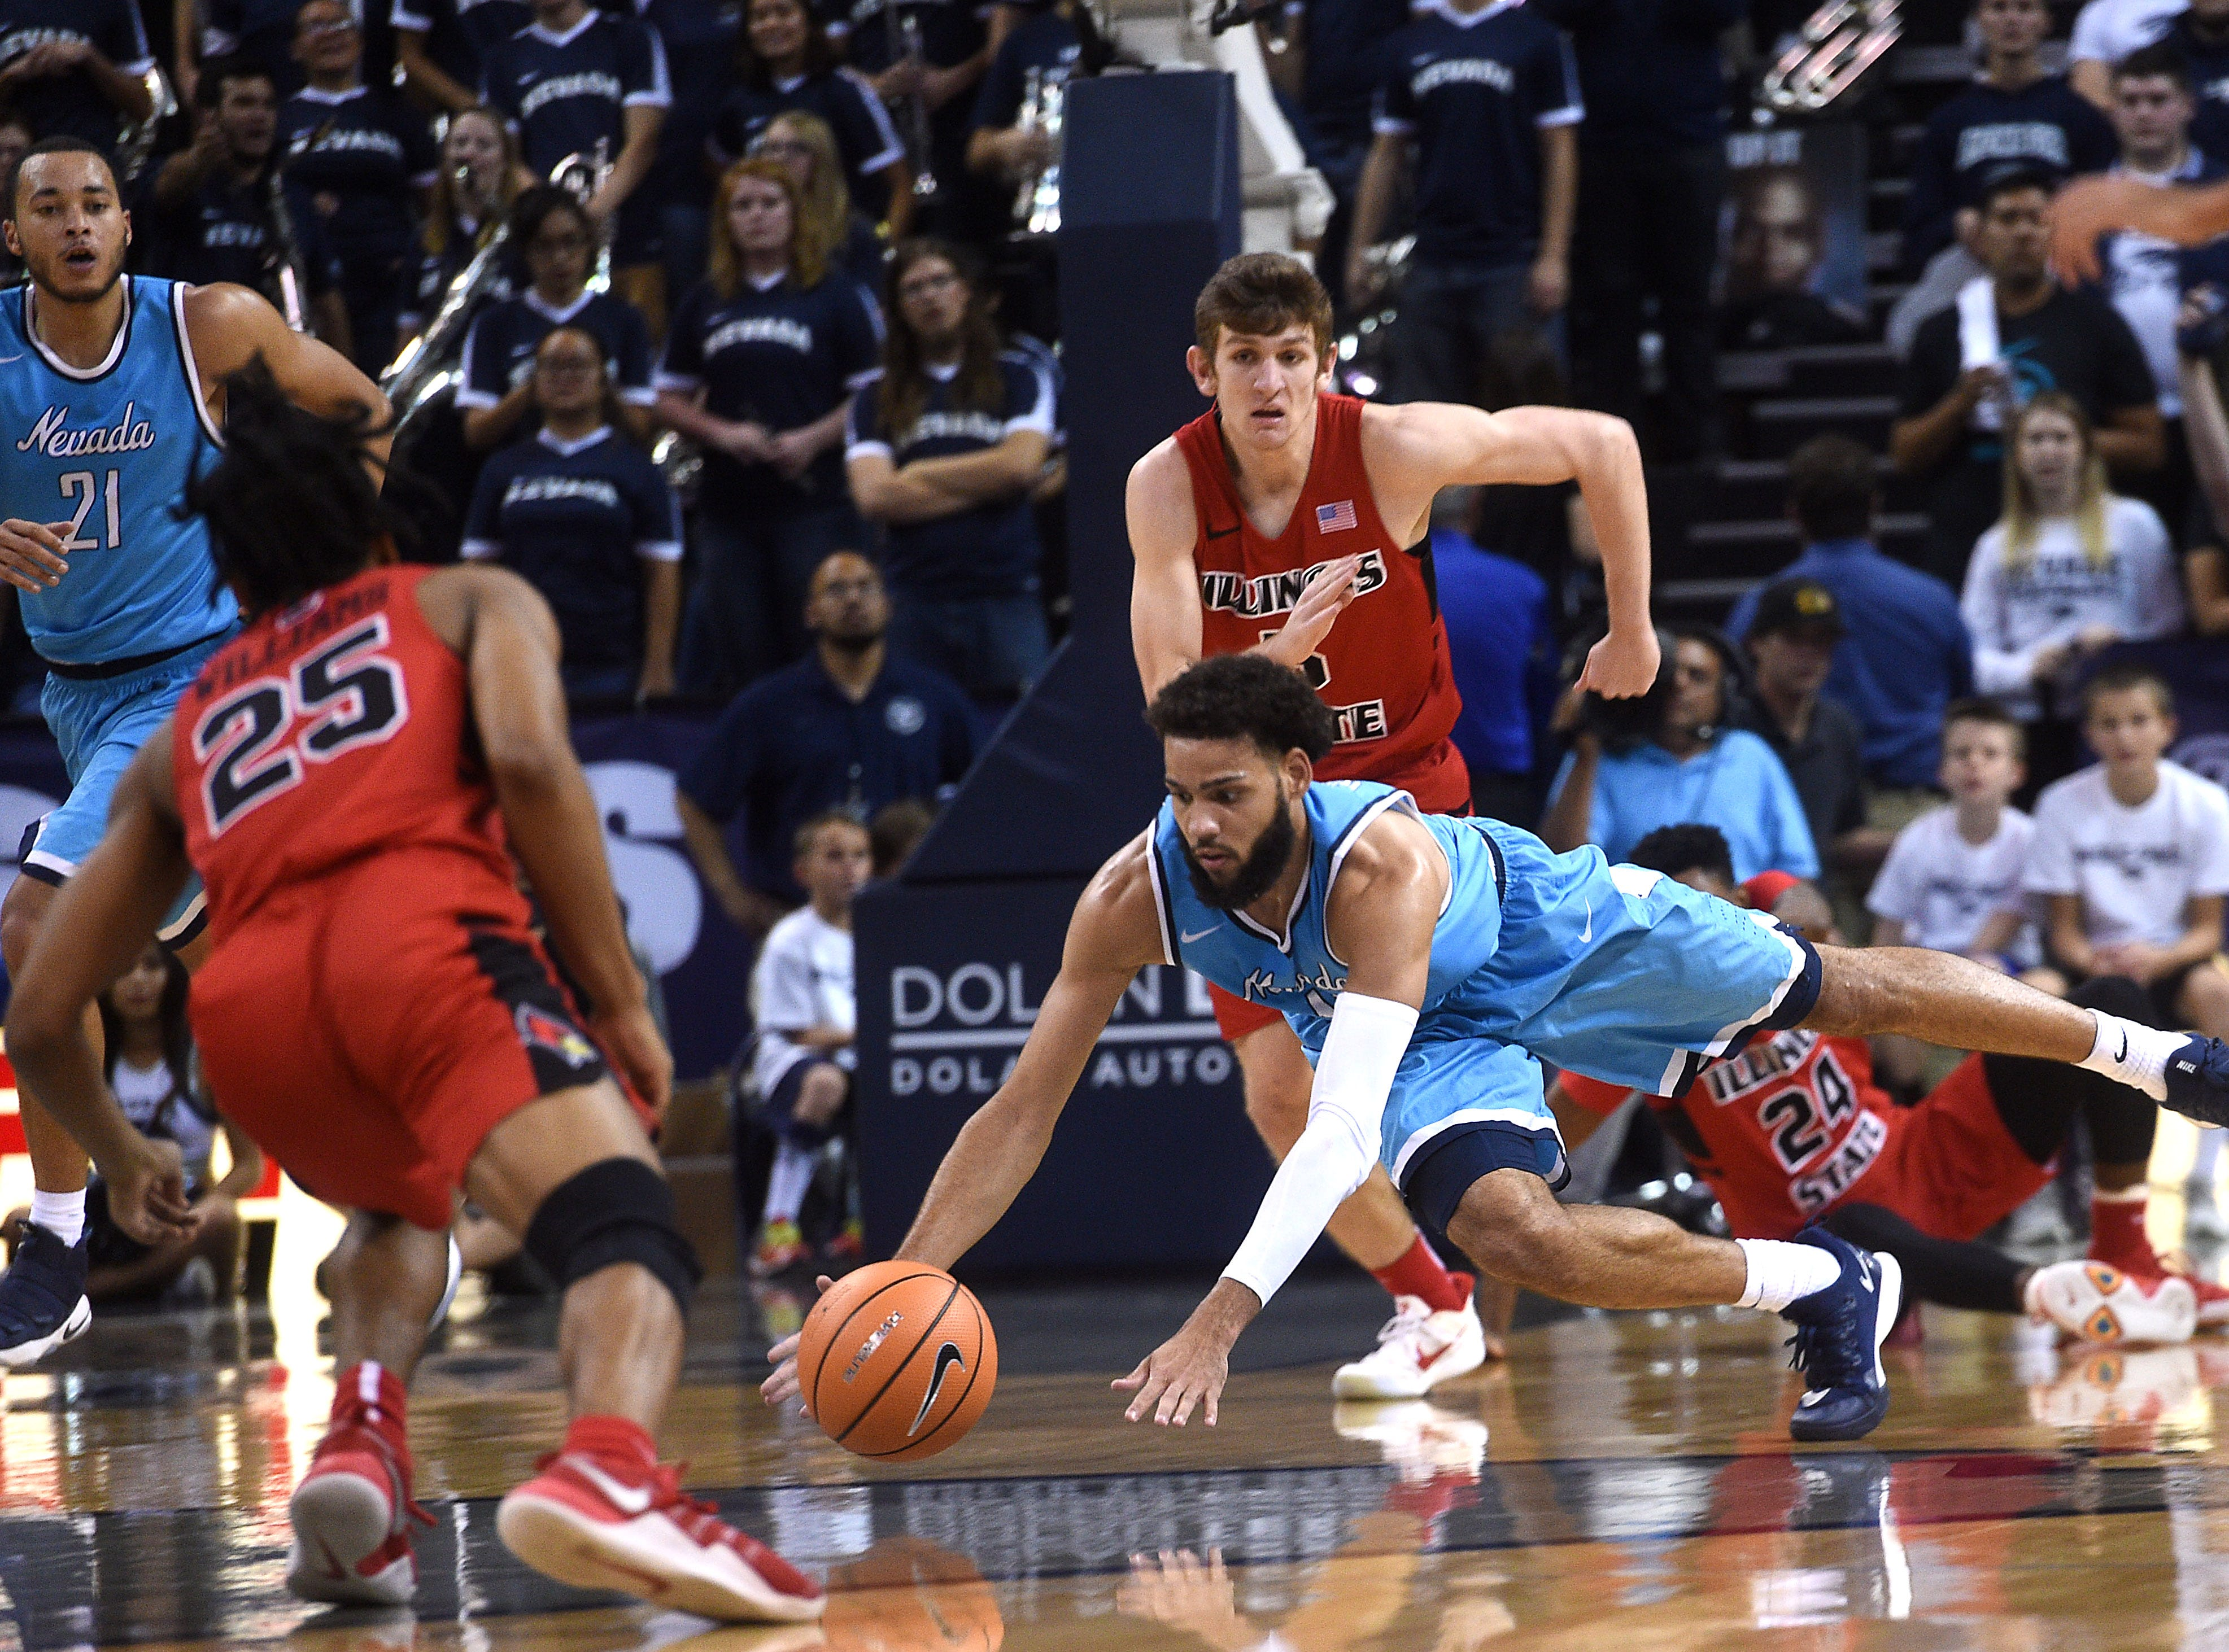 Nevada's Cody Martin dives for a loose ball while taking on Illinois State during their basketball game at Lawlor Events Center in Reno on Nov. 29, 2017.